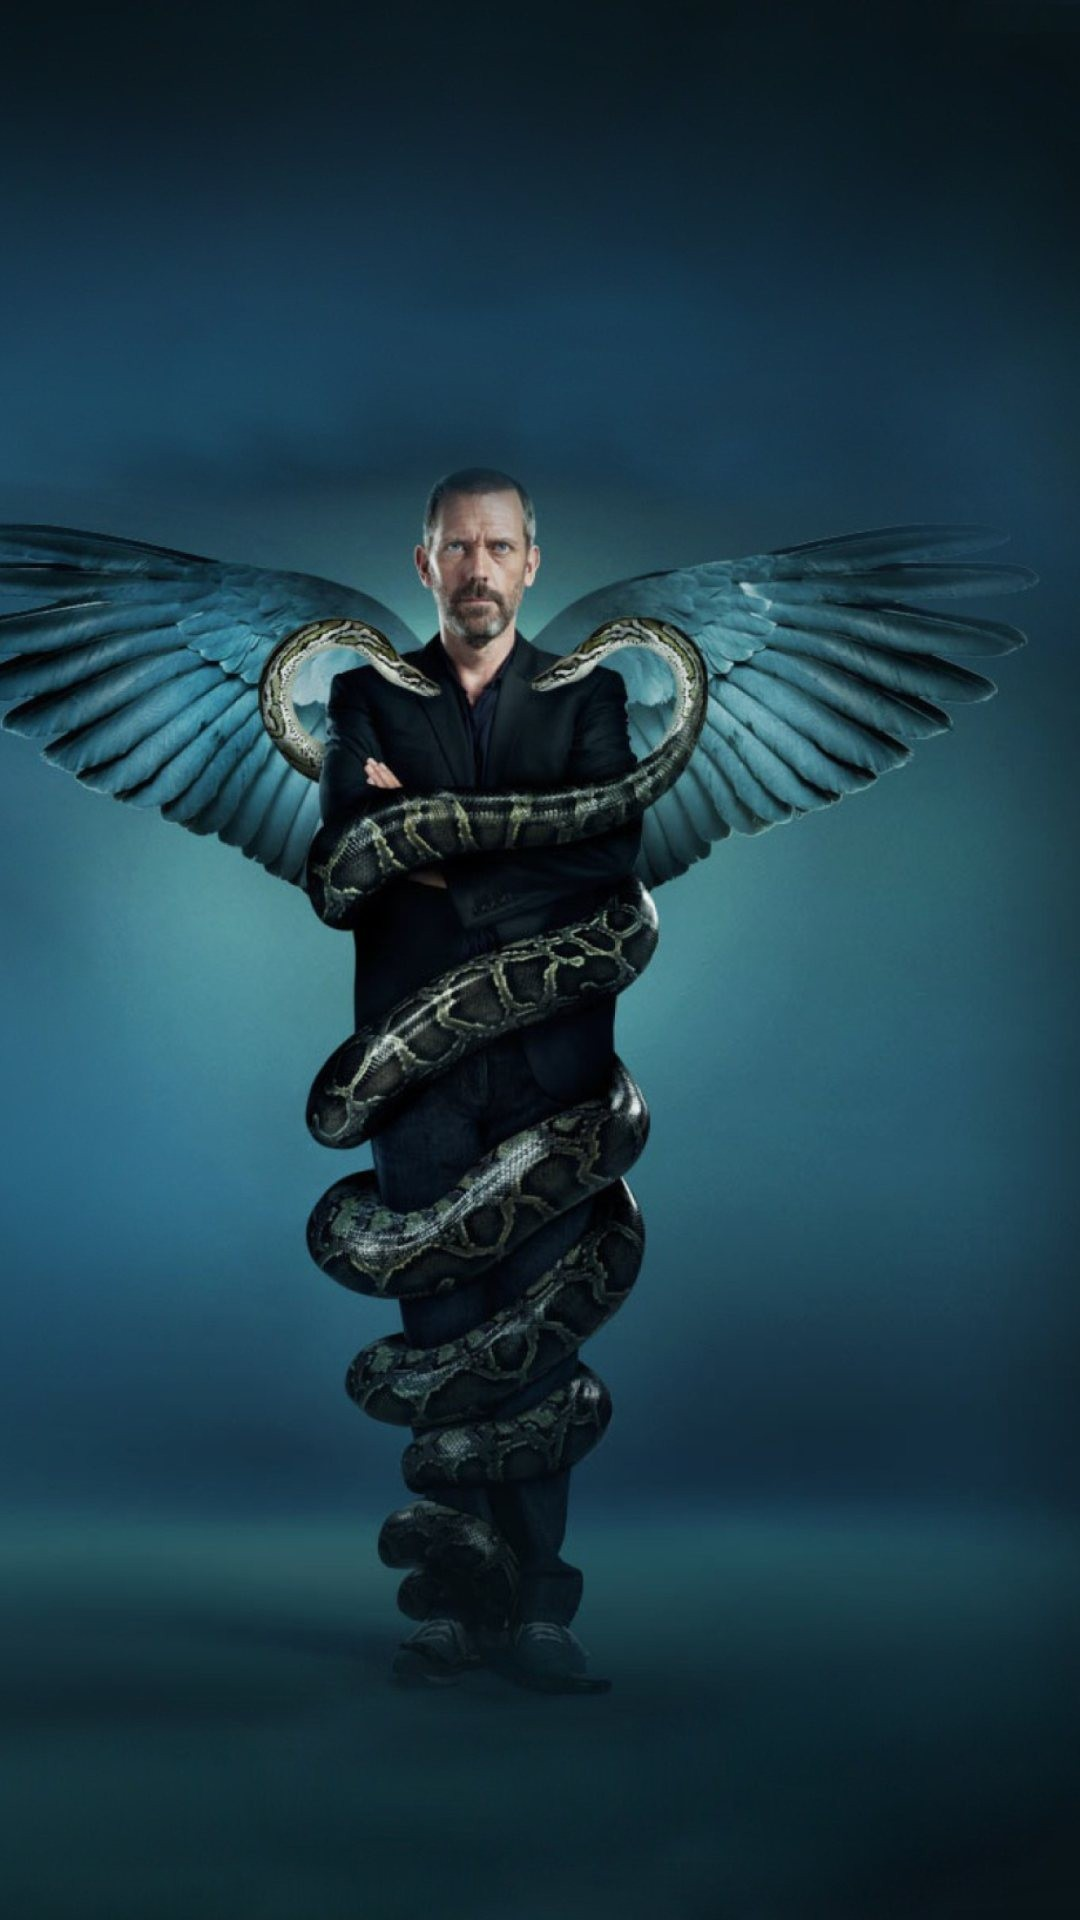 House MD HD Wallpapers For OnePlus 3